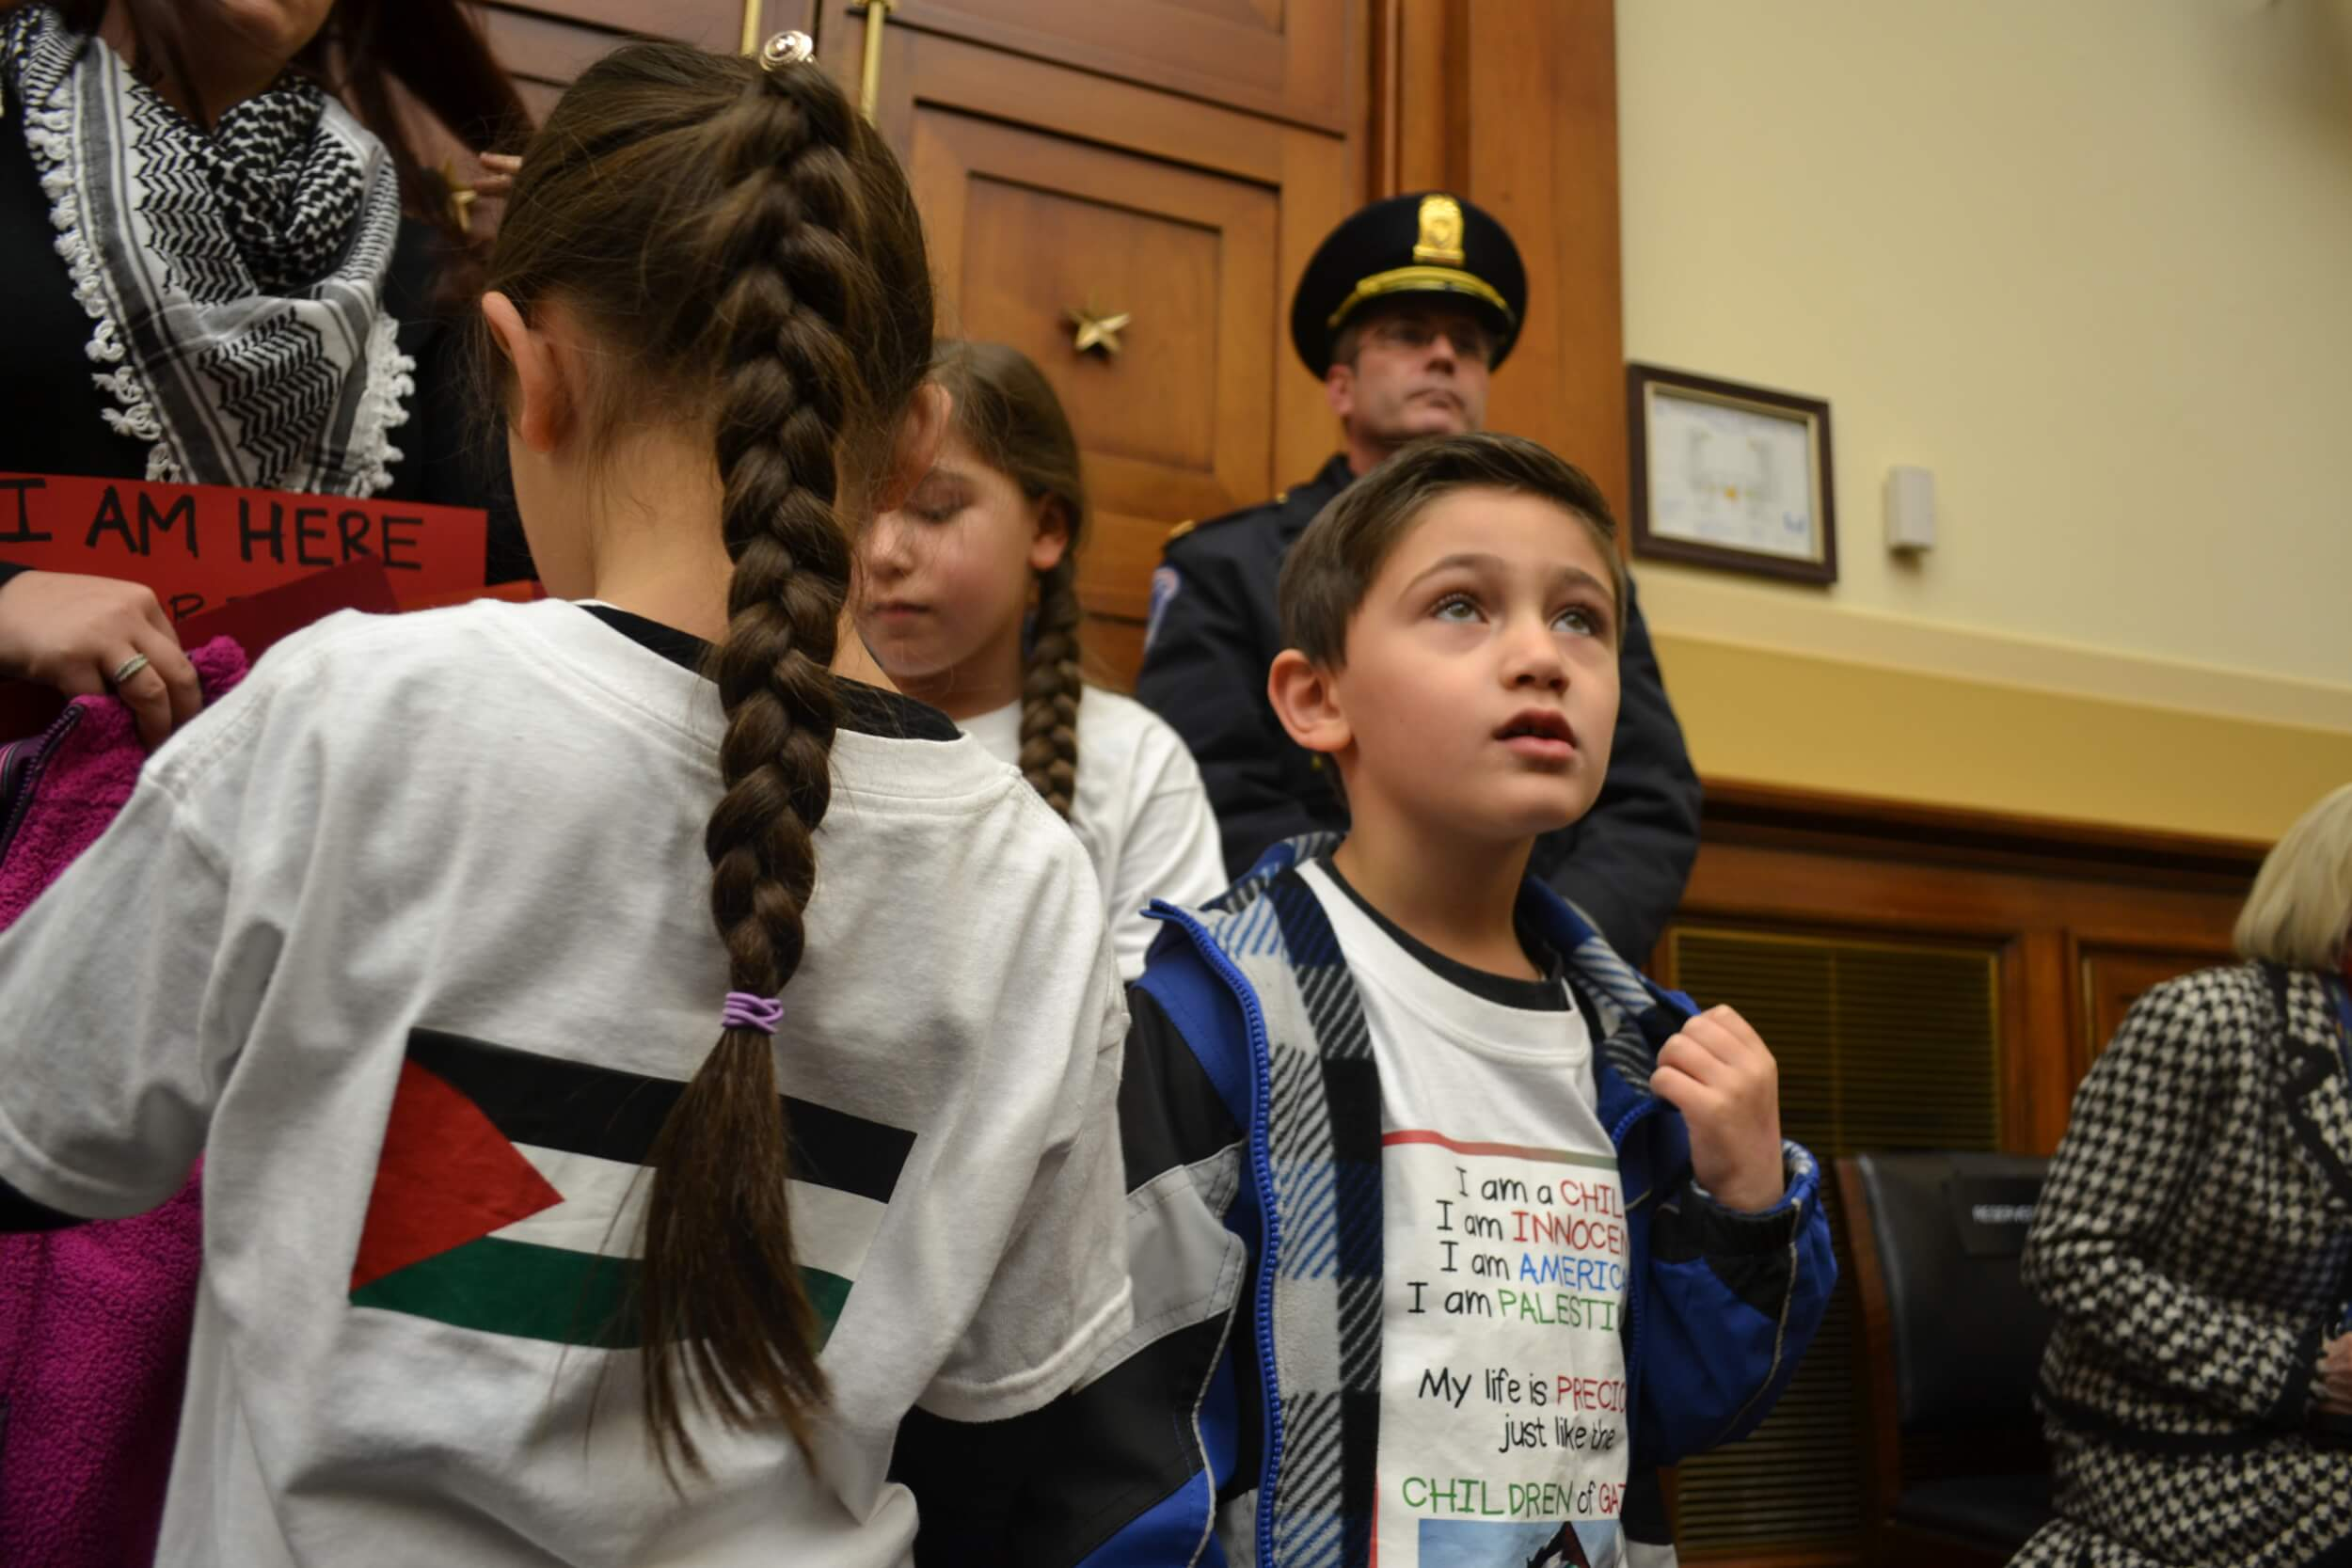 A family arrives late to the hearing, to show support for holding Israel accountable. A Capitol Police officer watches proceedings next to the door. (Photo: Sam Knight)